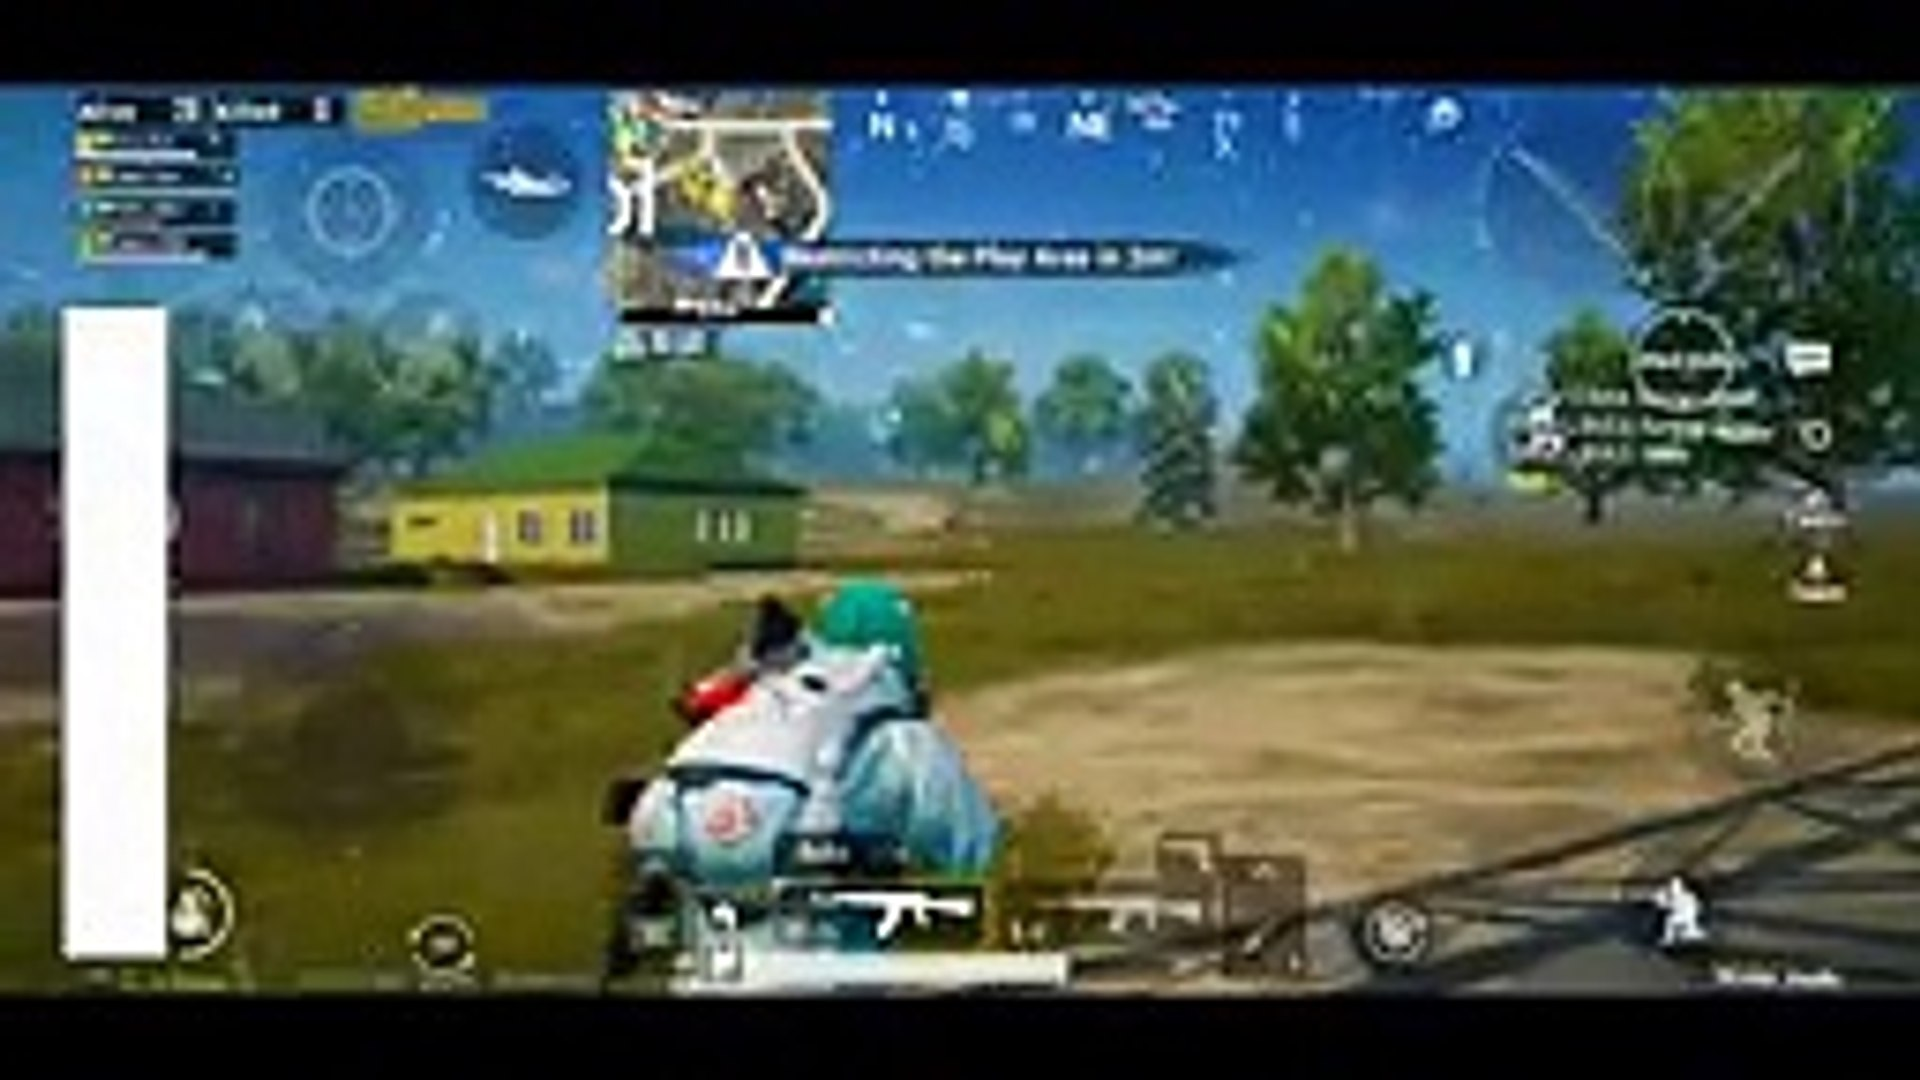 Top 3 New Secrets Trick In Pubg Mobile ! Pubg Mobile Tips And Trick Part 2